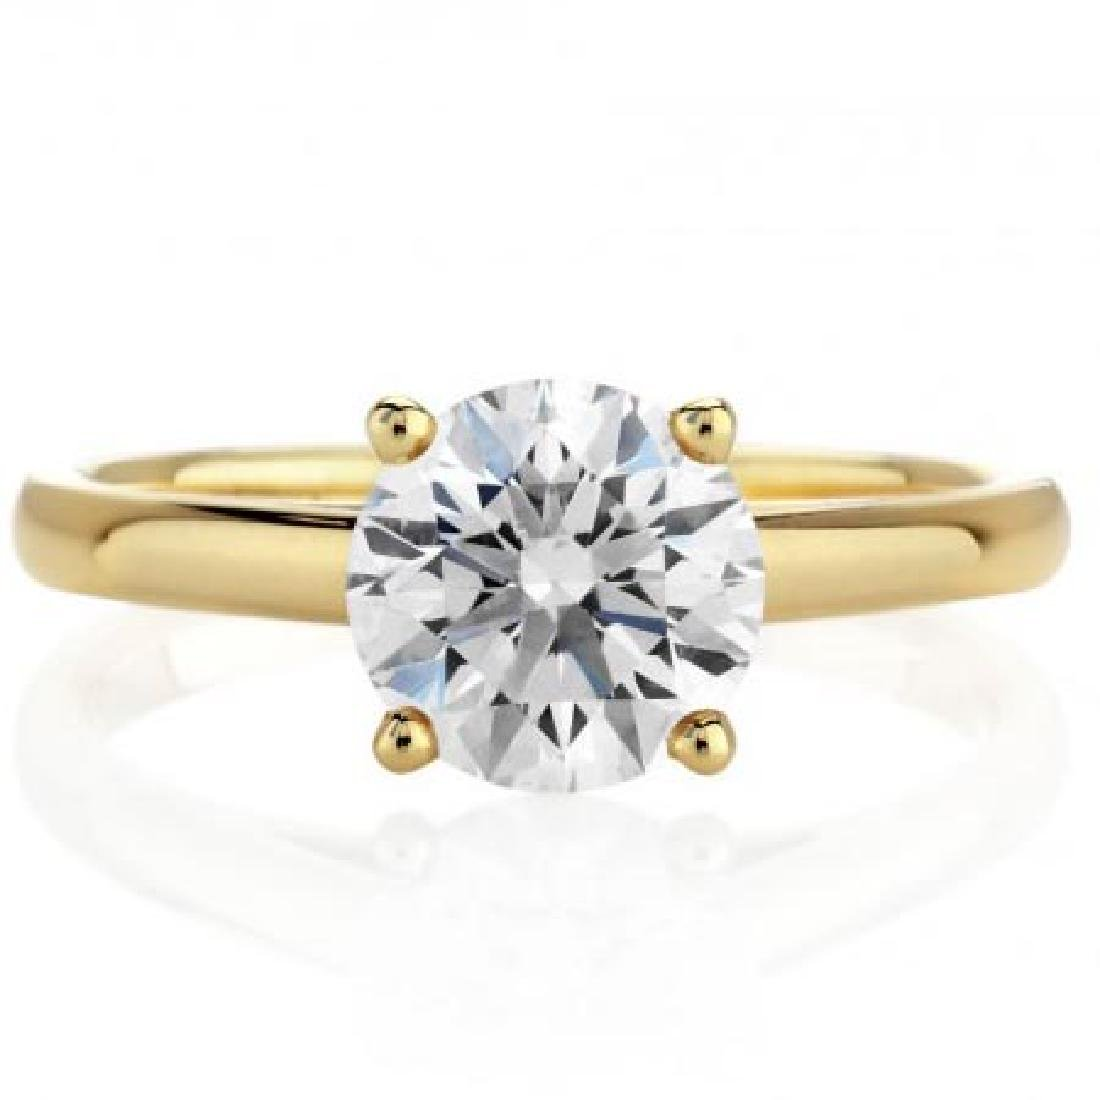 CERTIFIED 1.01 CTW ROUND H/SI1 SOLITAIRE RING IN 14K YE